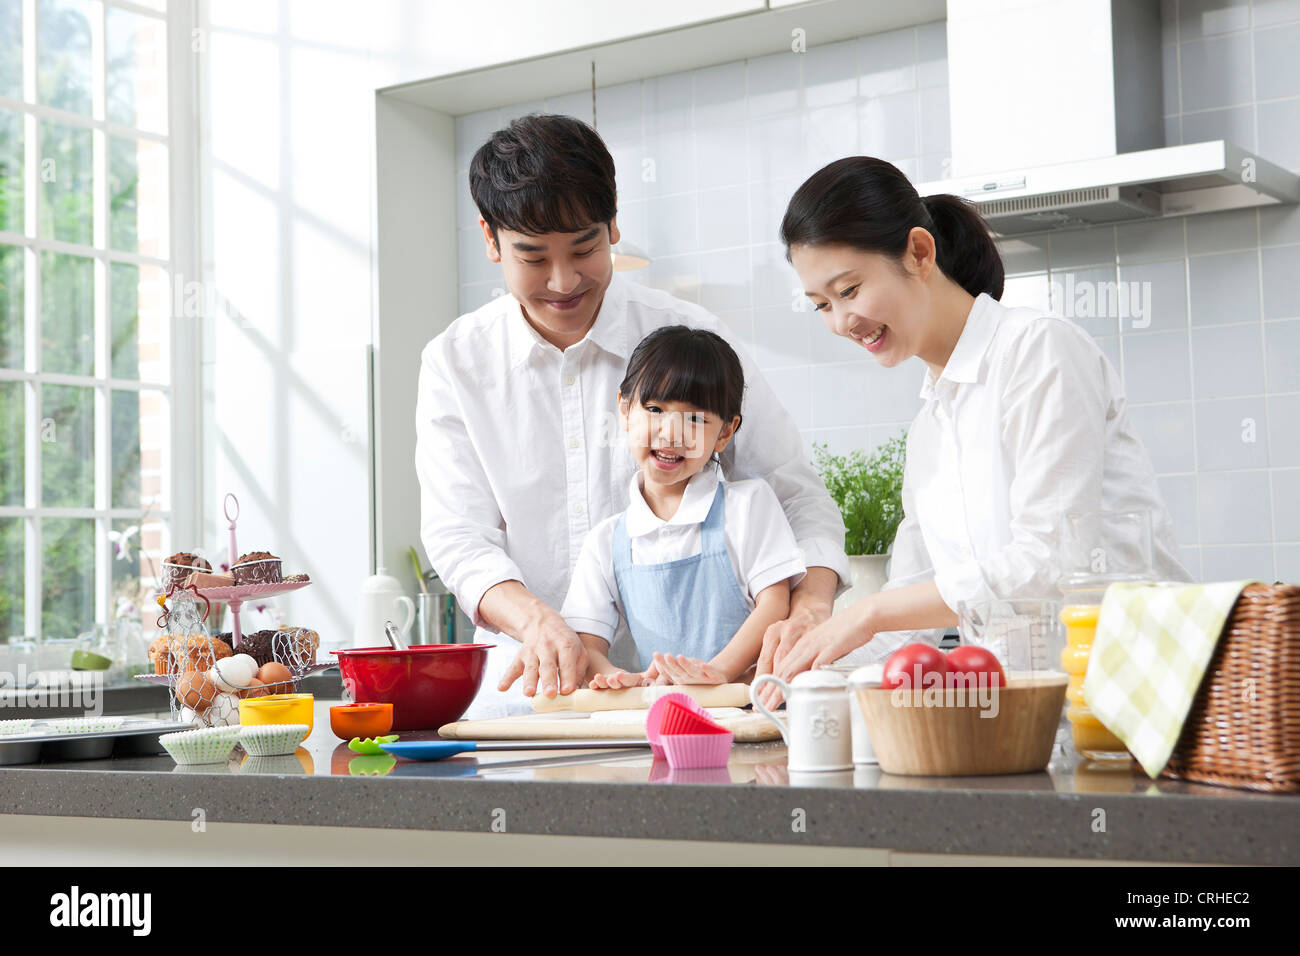 Happy family cooking in the kitchen Stock Photo: 48942322 - Alamy